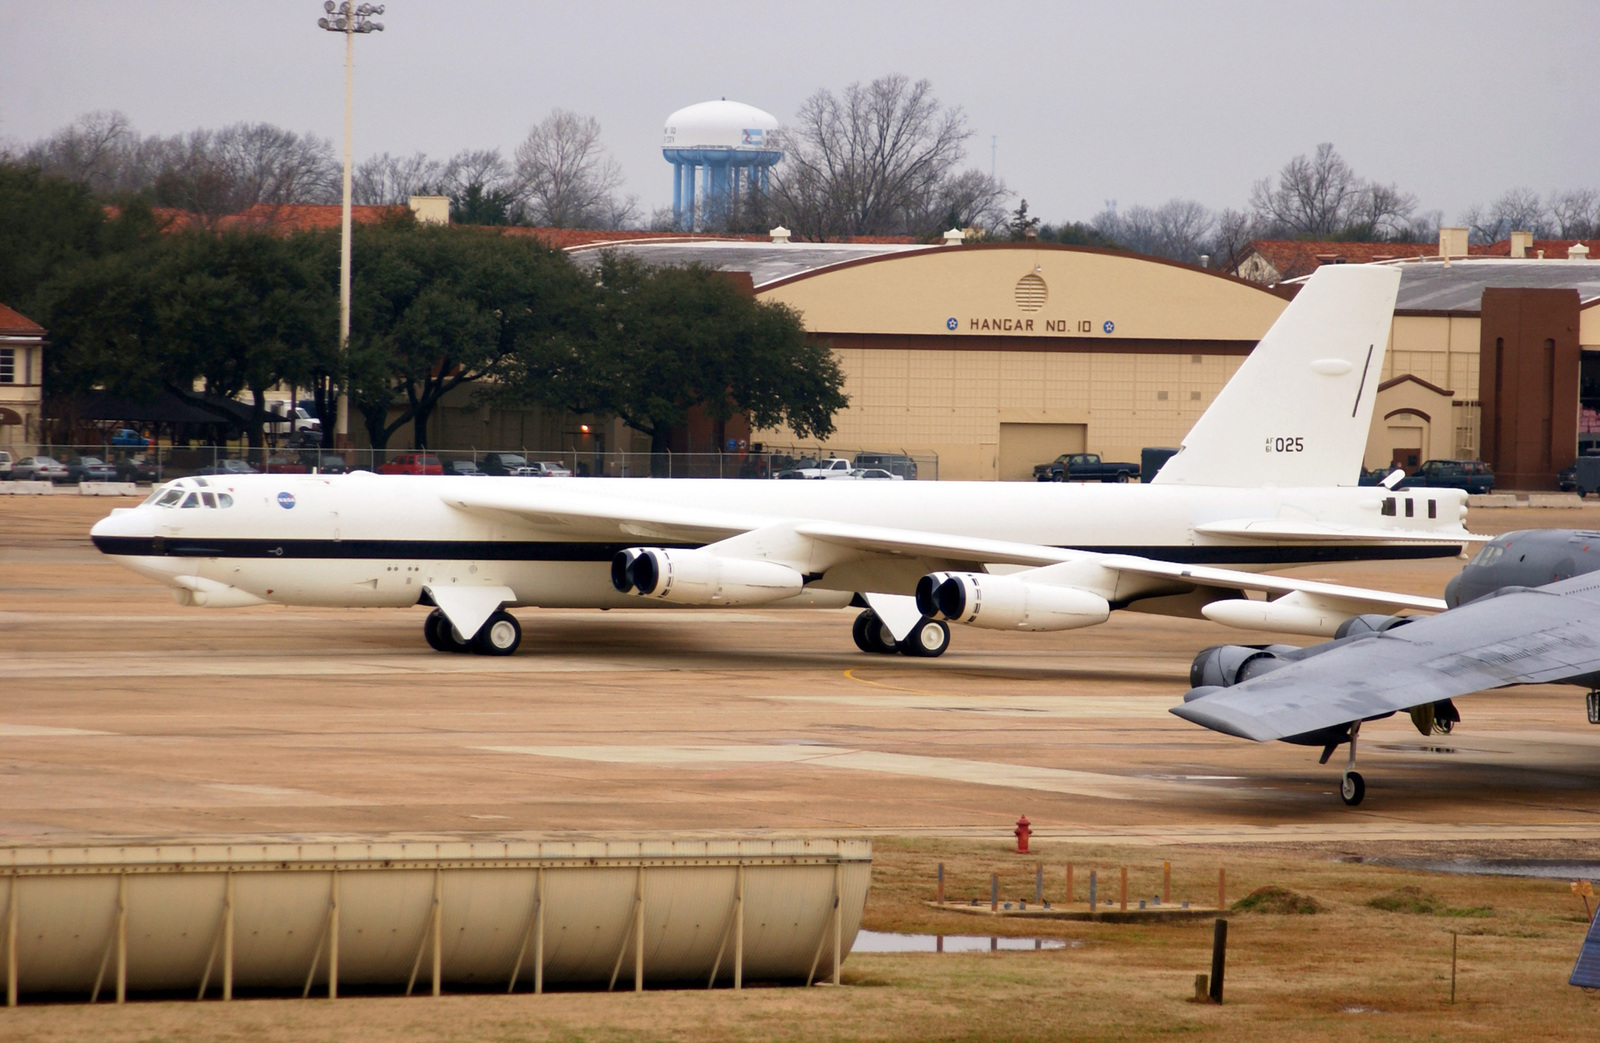 A National Air and Space Administration (NASA) B-52H Stratofortress on loan from the US Air Force (USAF) arrives at Barksdale Air Force Base (AFB), Louissiana (LA). The Stratofortress will undergo a Phase Two inspection by personnel from the Air Force Reserve Commands 917th Wing. The inspection entails a nose-to-tail overhaul of the aircraft